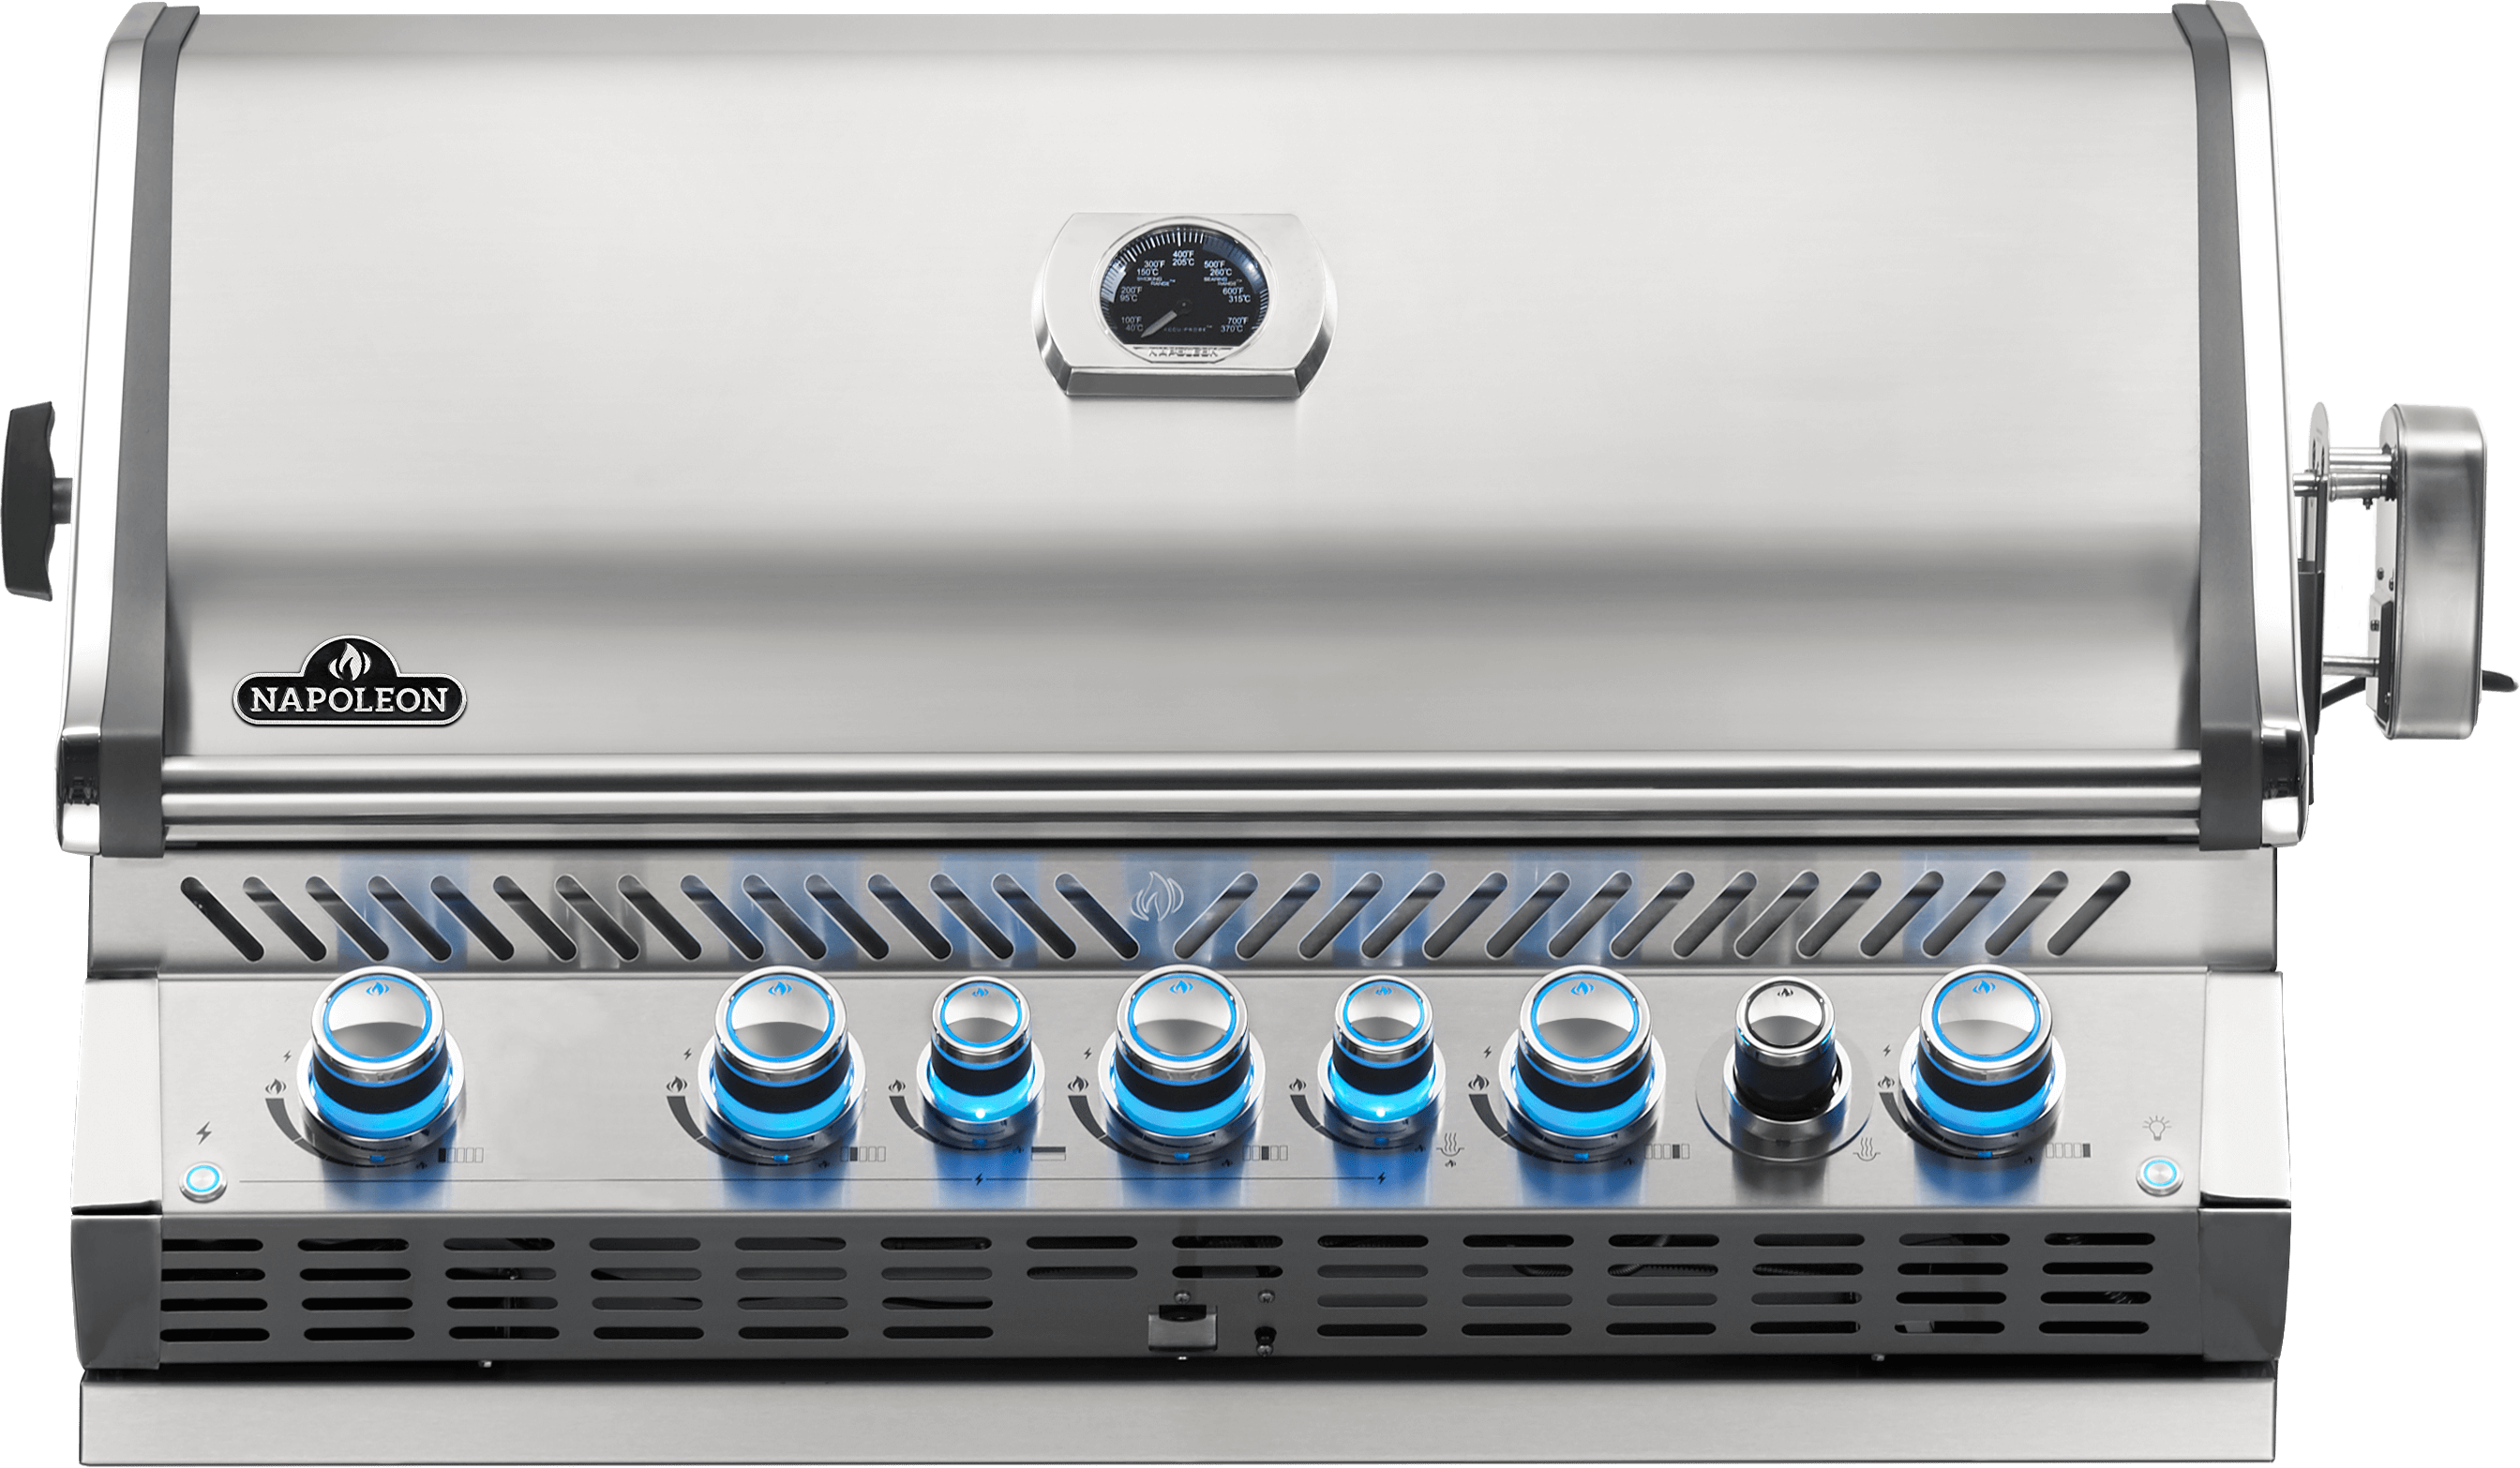 Model: BIPRO665RBPSS-3 | Built-in Prestige PRO™ 665 Propane Gas Grill Head with Infrared Rear Burner, Stainless Steel